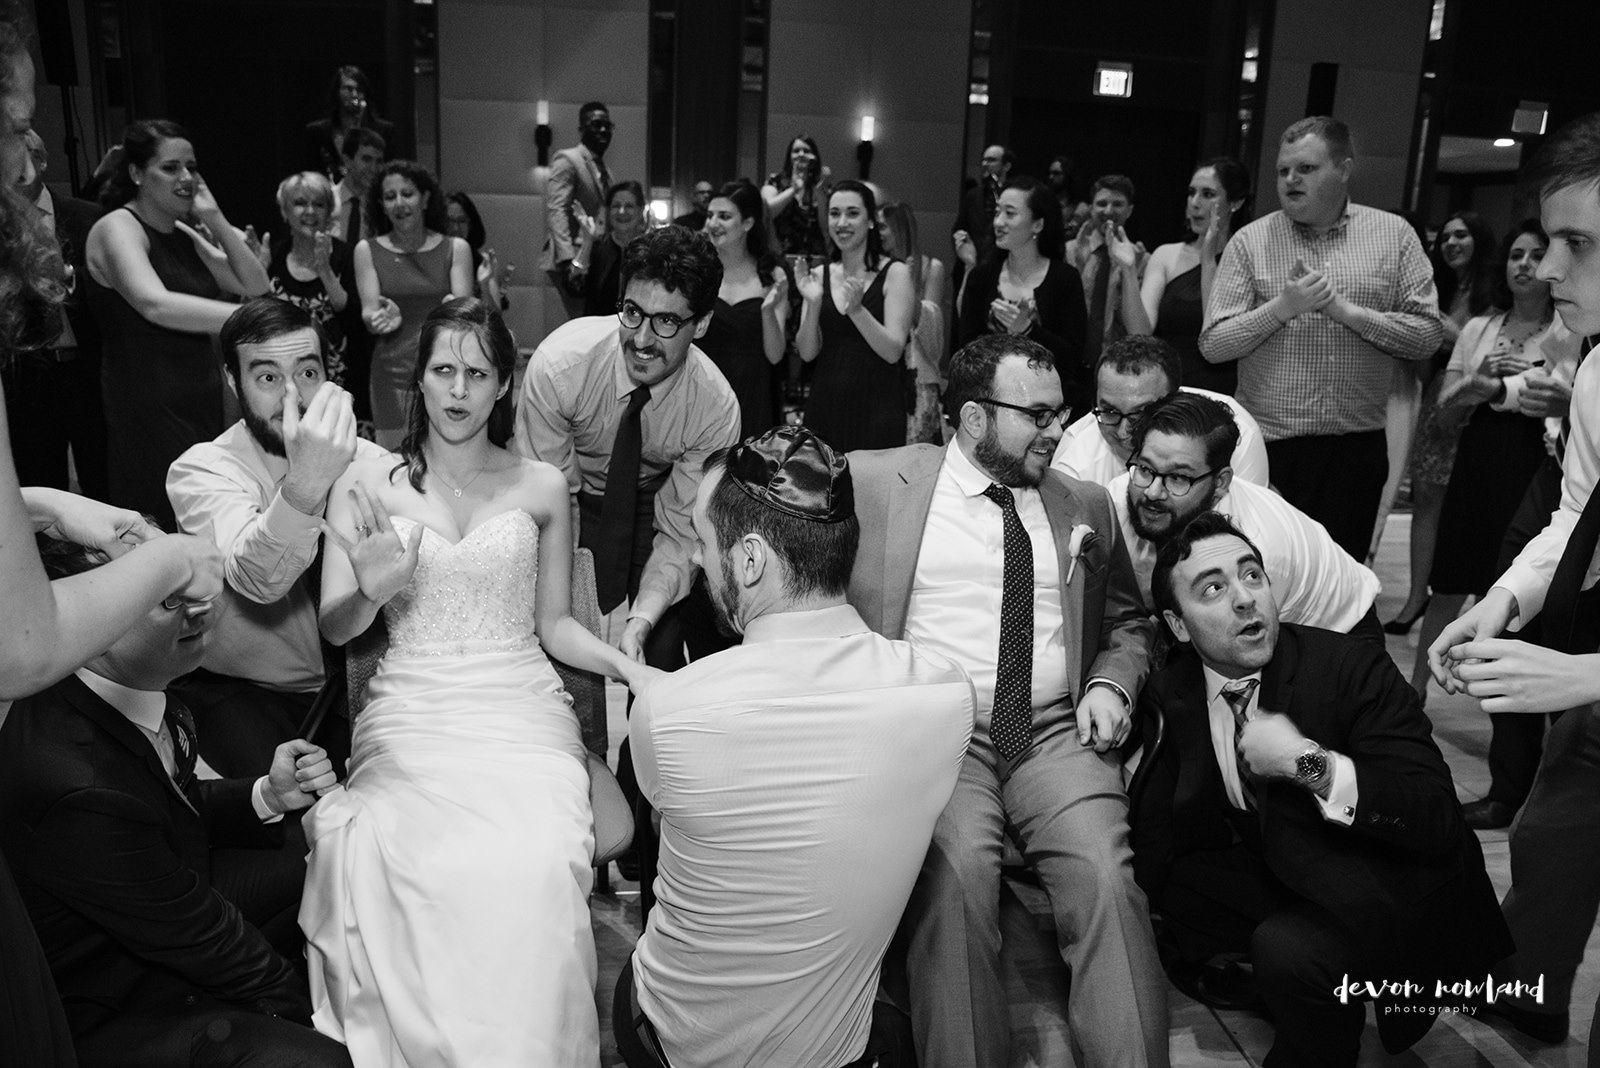 RJ-wedding-Four-Seasons-Baltimore-Devon-Rowland-Photography-2017-May07-5158_bw.jpg